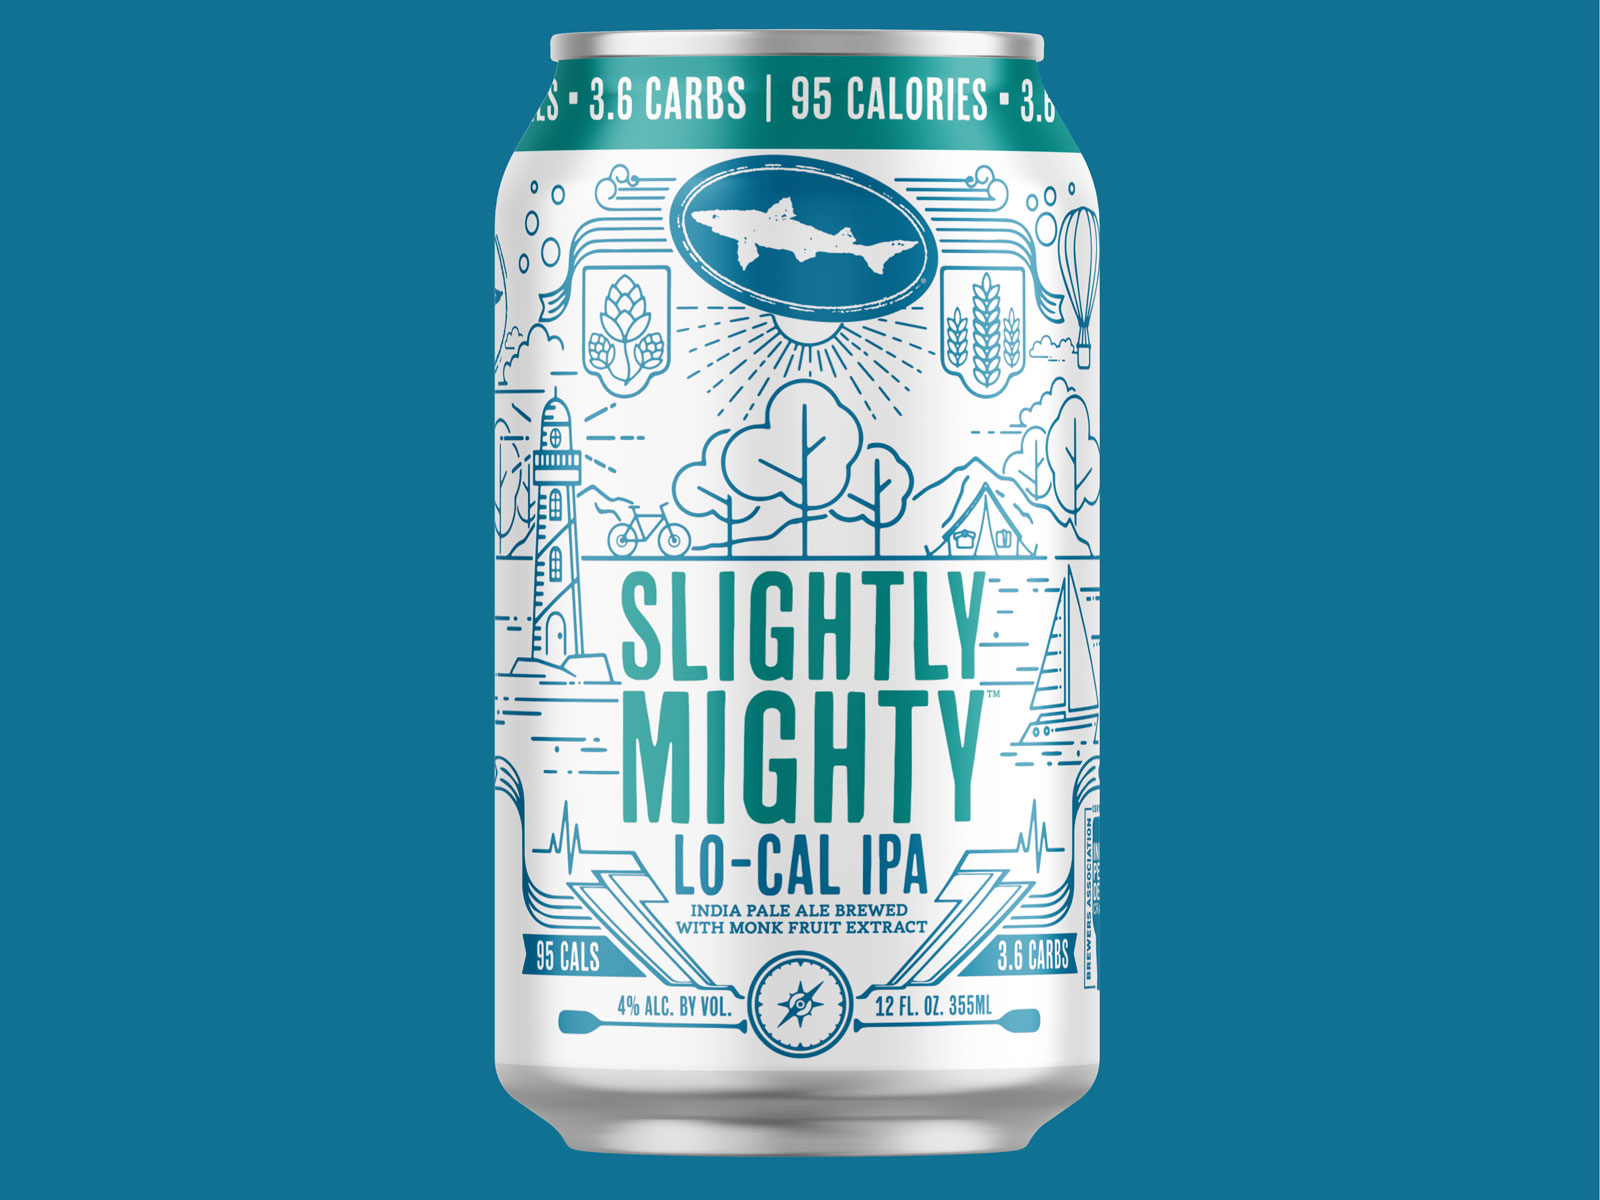 Dogfish Head Used Monk Fruit to Create a Low-Calorie IPA